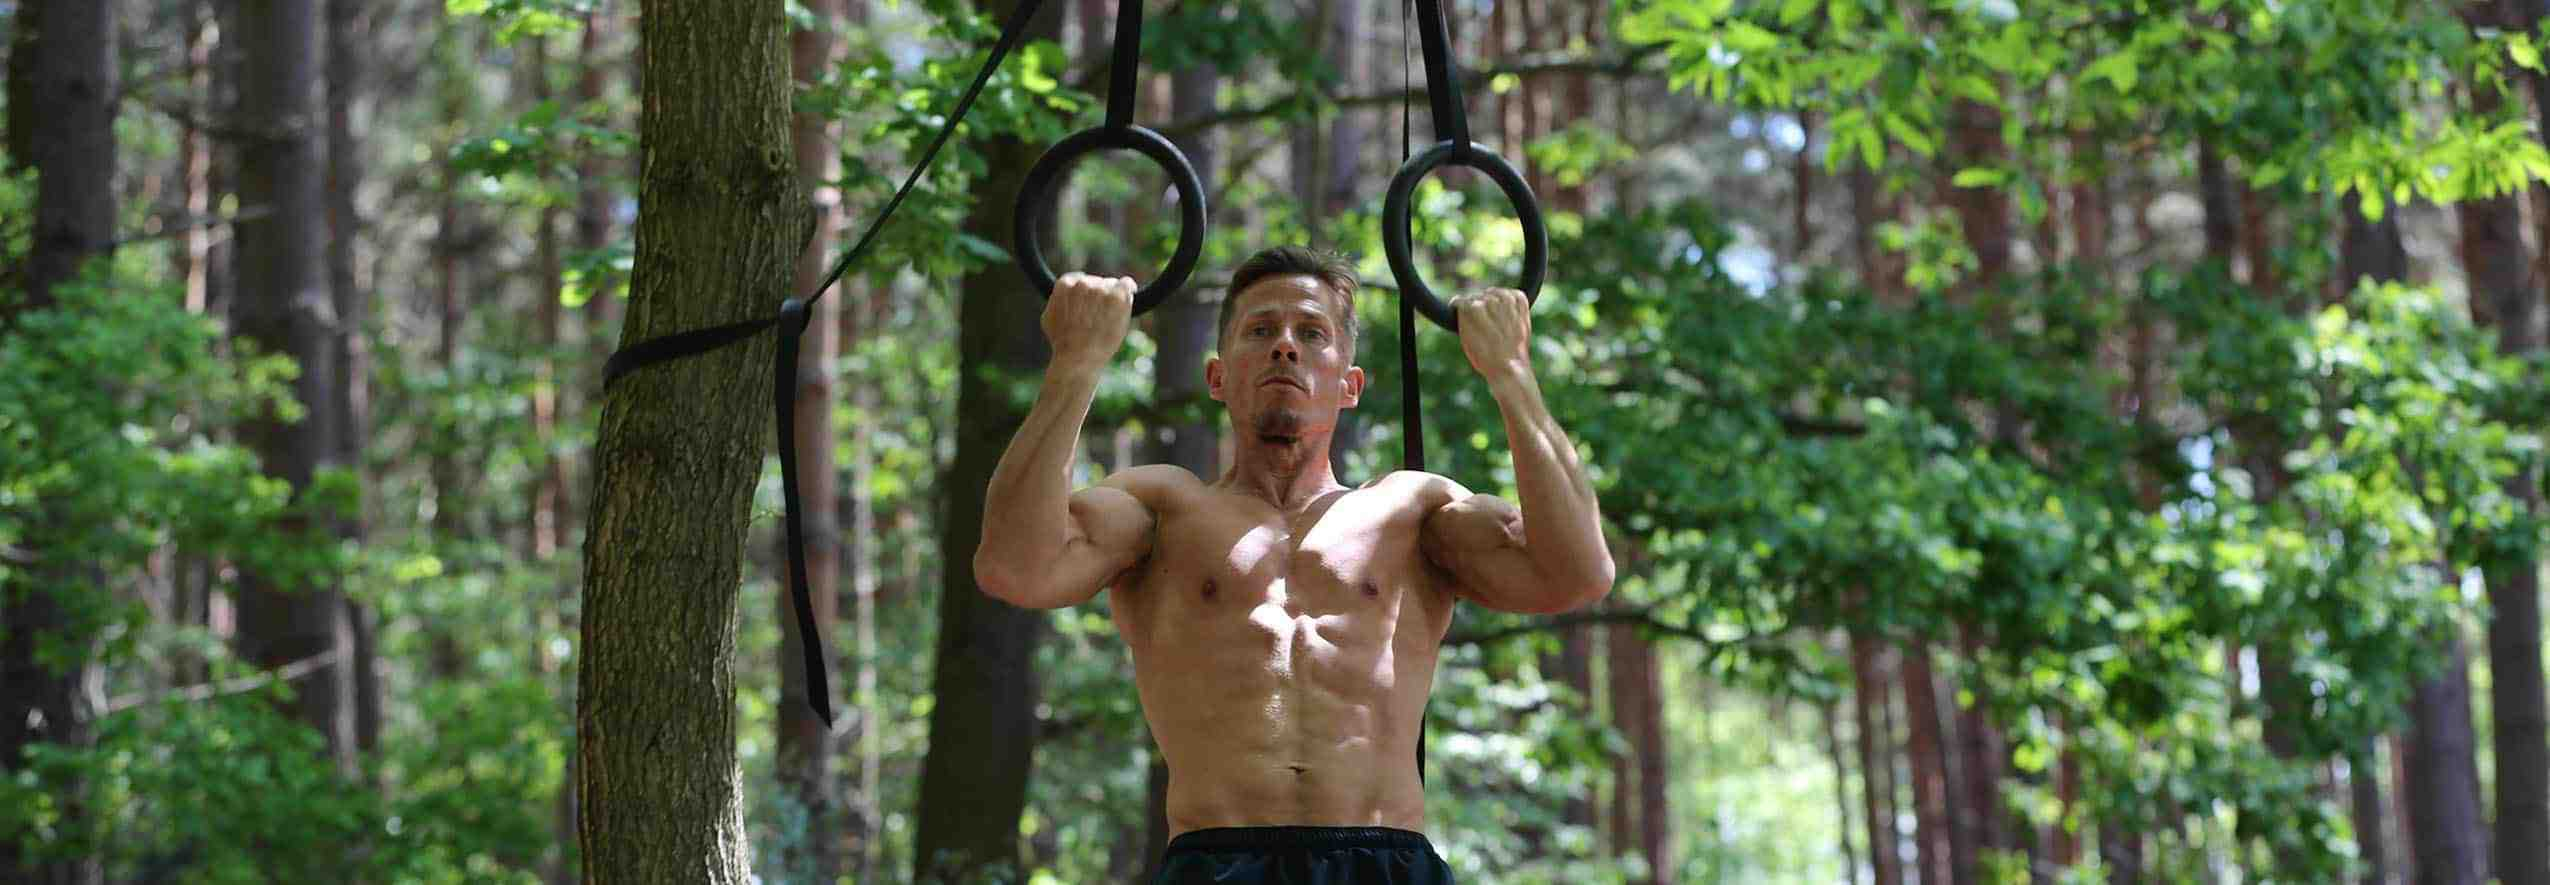 Athlete male man work out with rings